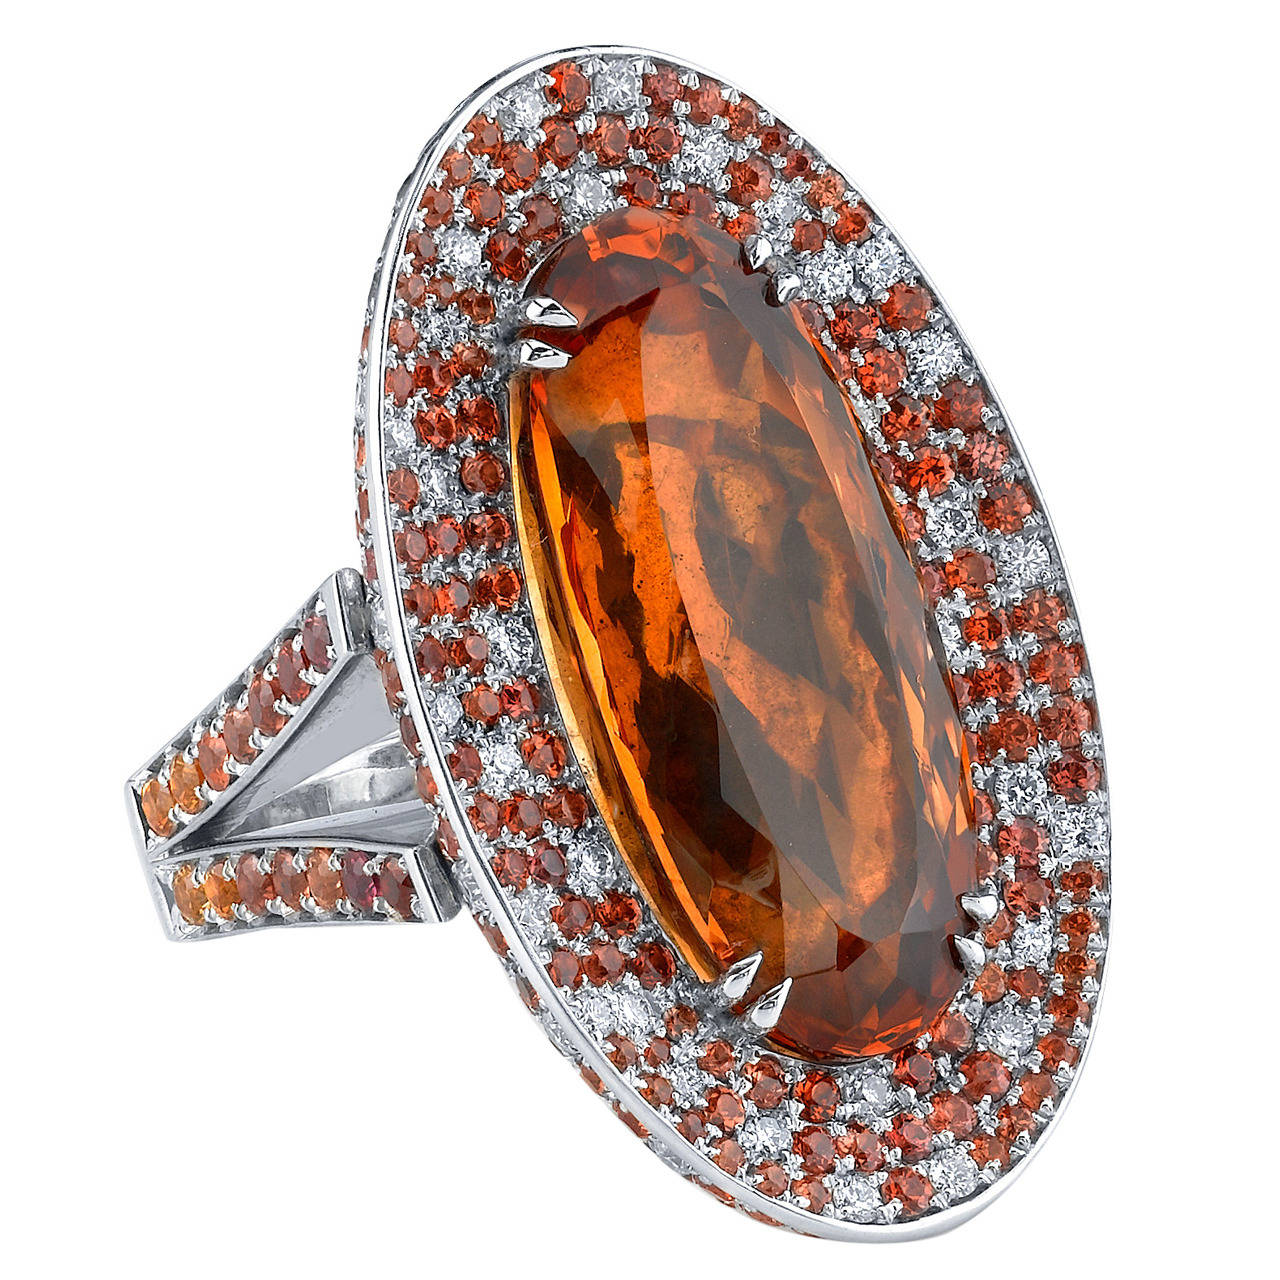 21.99CT Precious Imperial Topaz set in 18 Karat White Gold, accented with White Diamonds and Orange Sapphires.